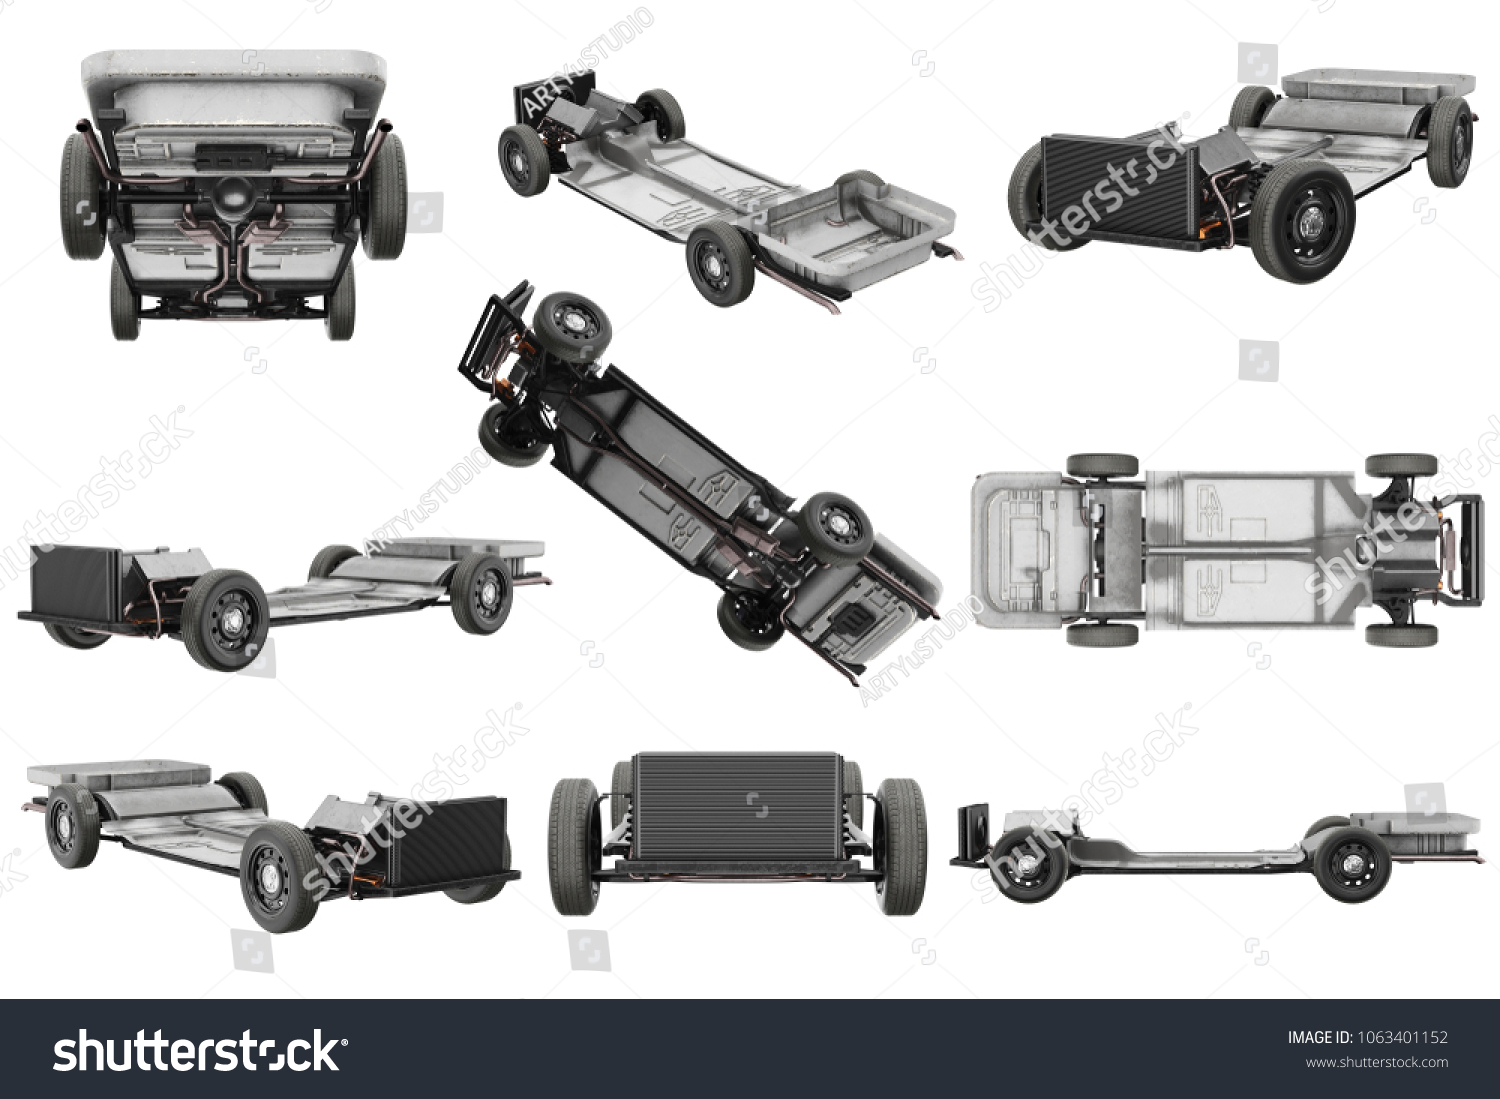 Royalty Free Stock Illustration of Chassis Frame Car Wheel